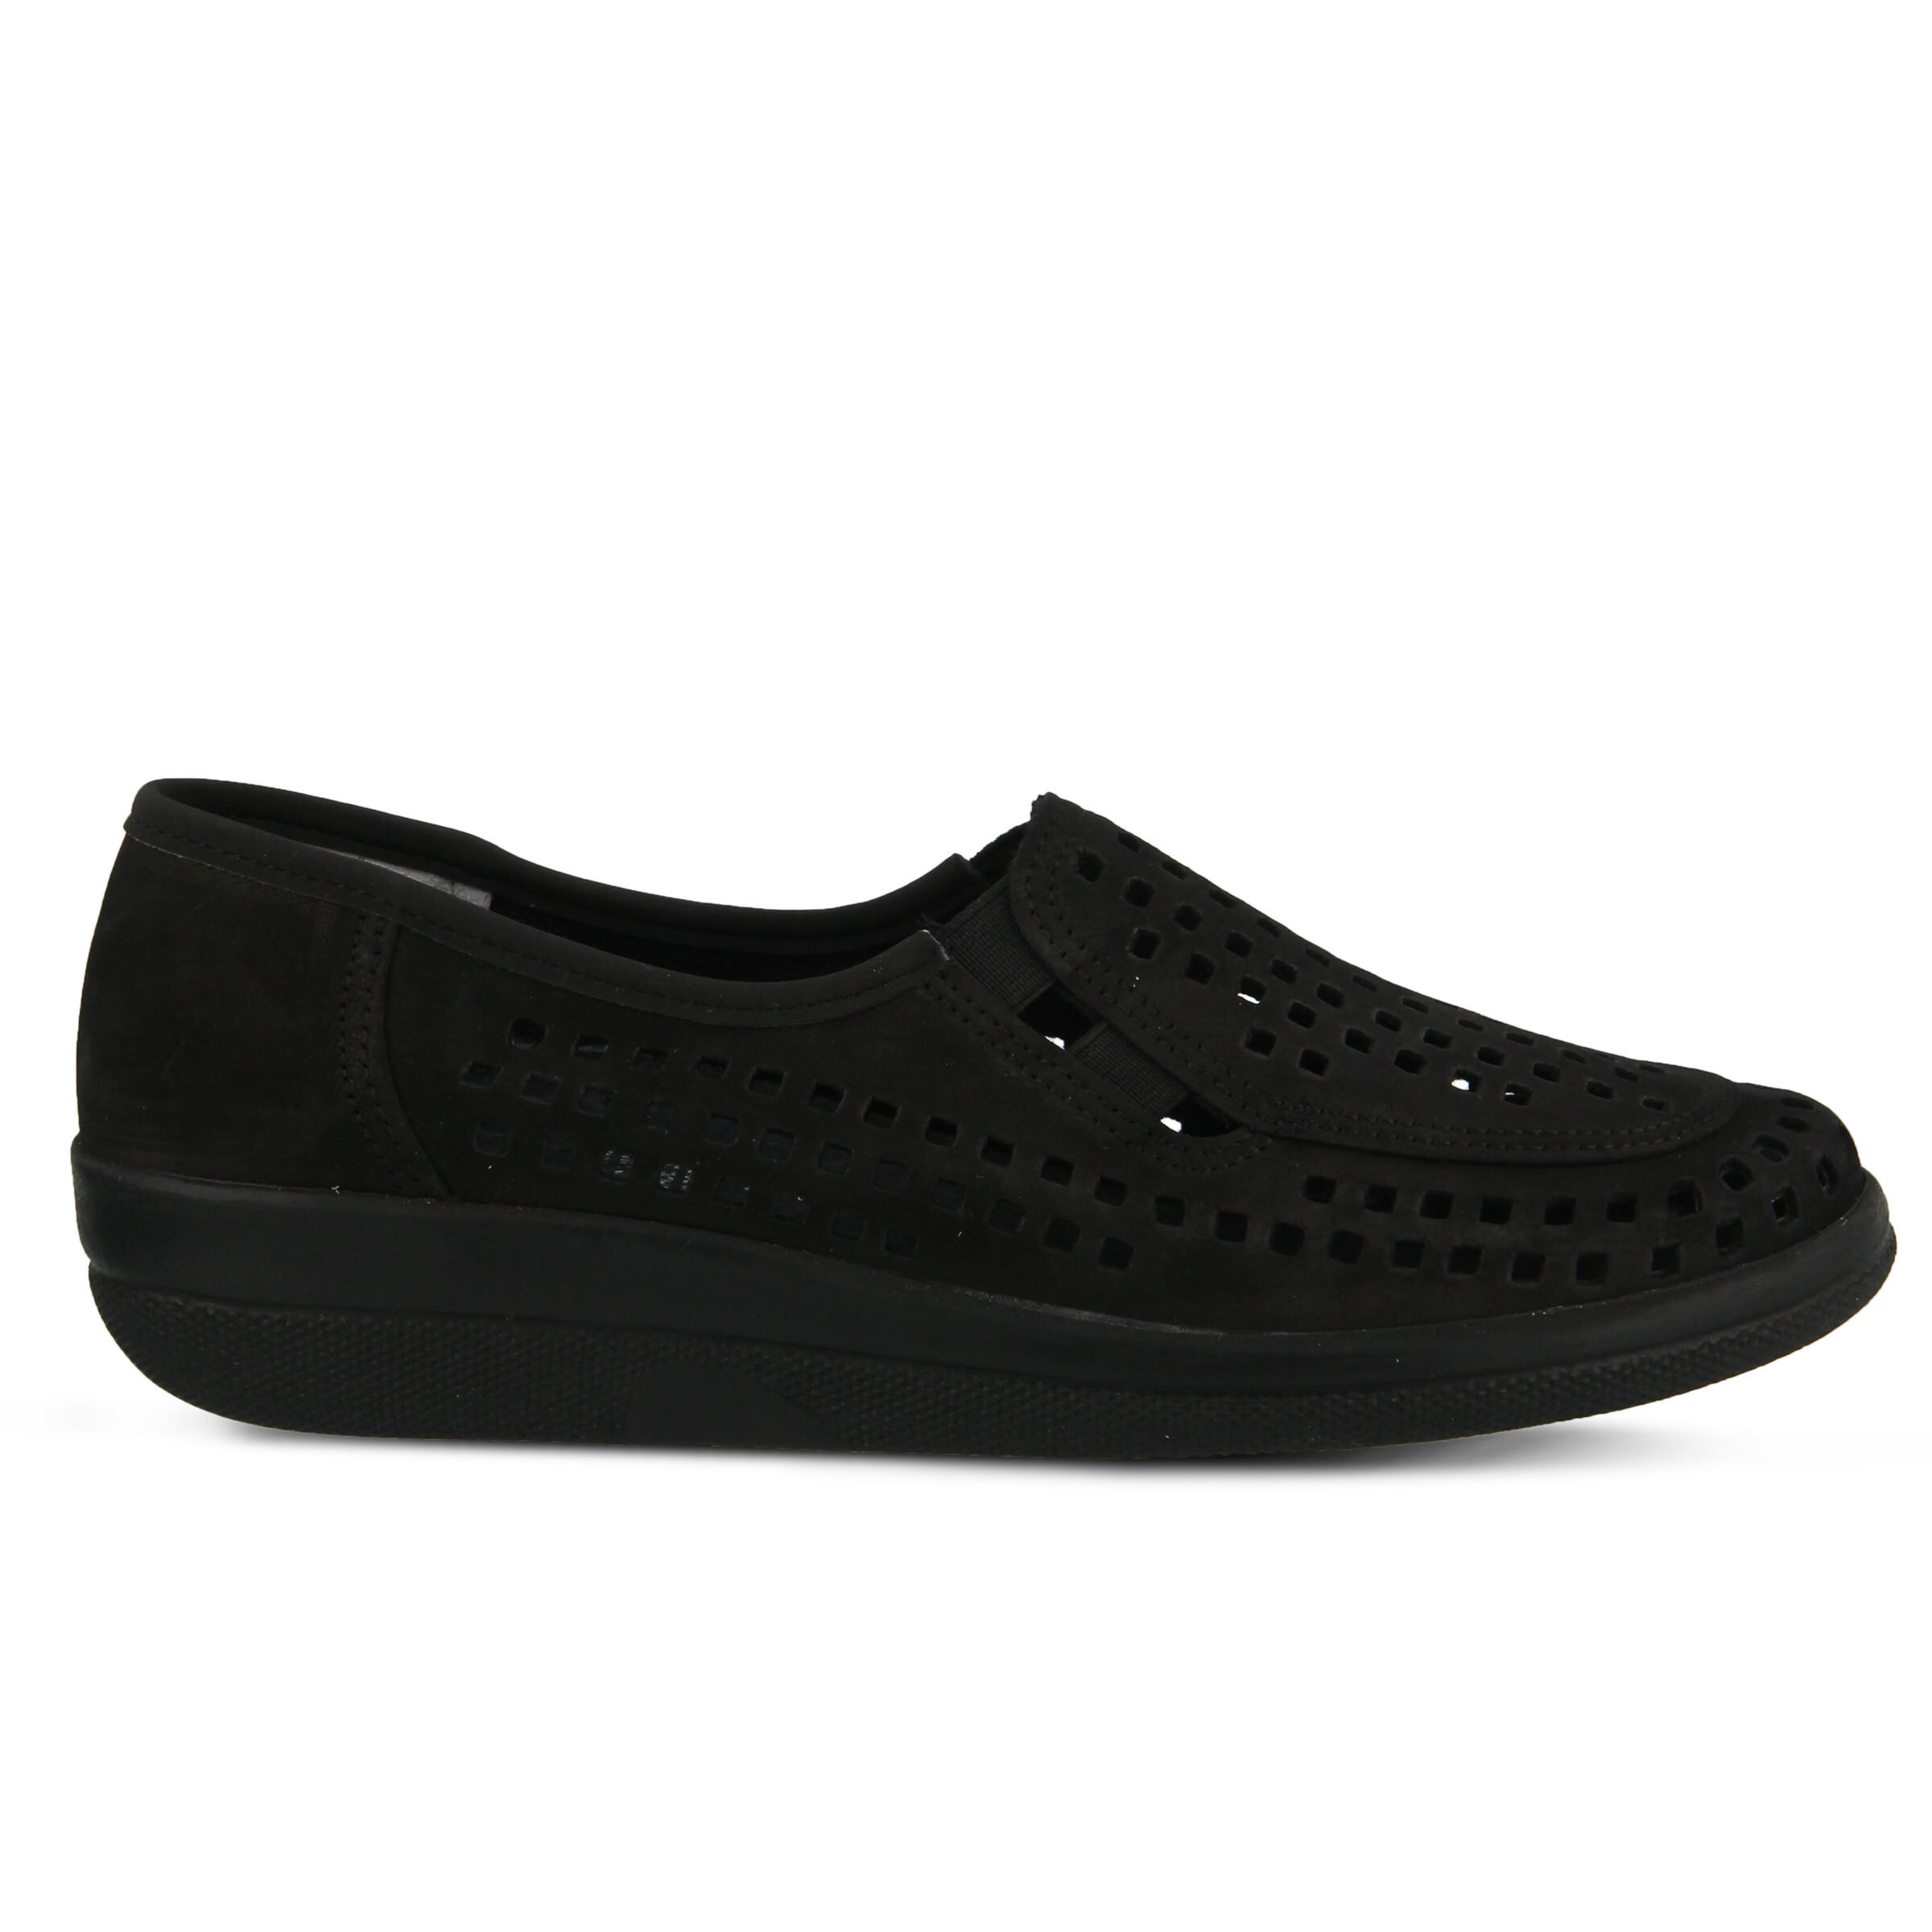 choose authentic Women's SPRING STEP Twila Slip-Ons Black